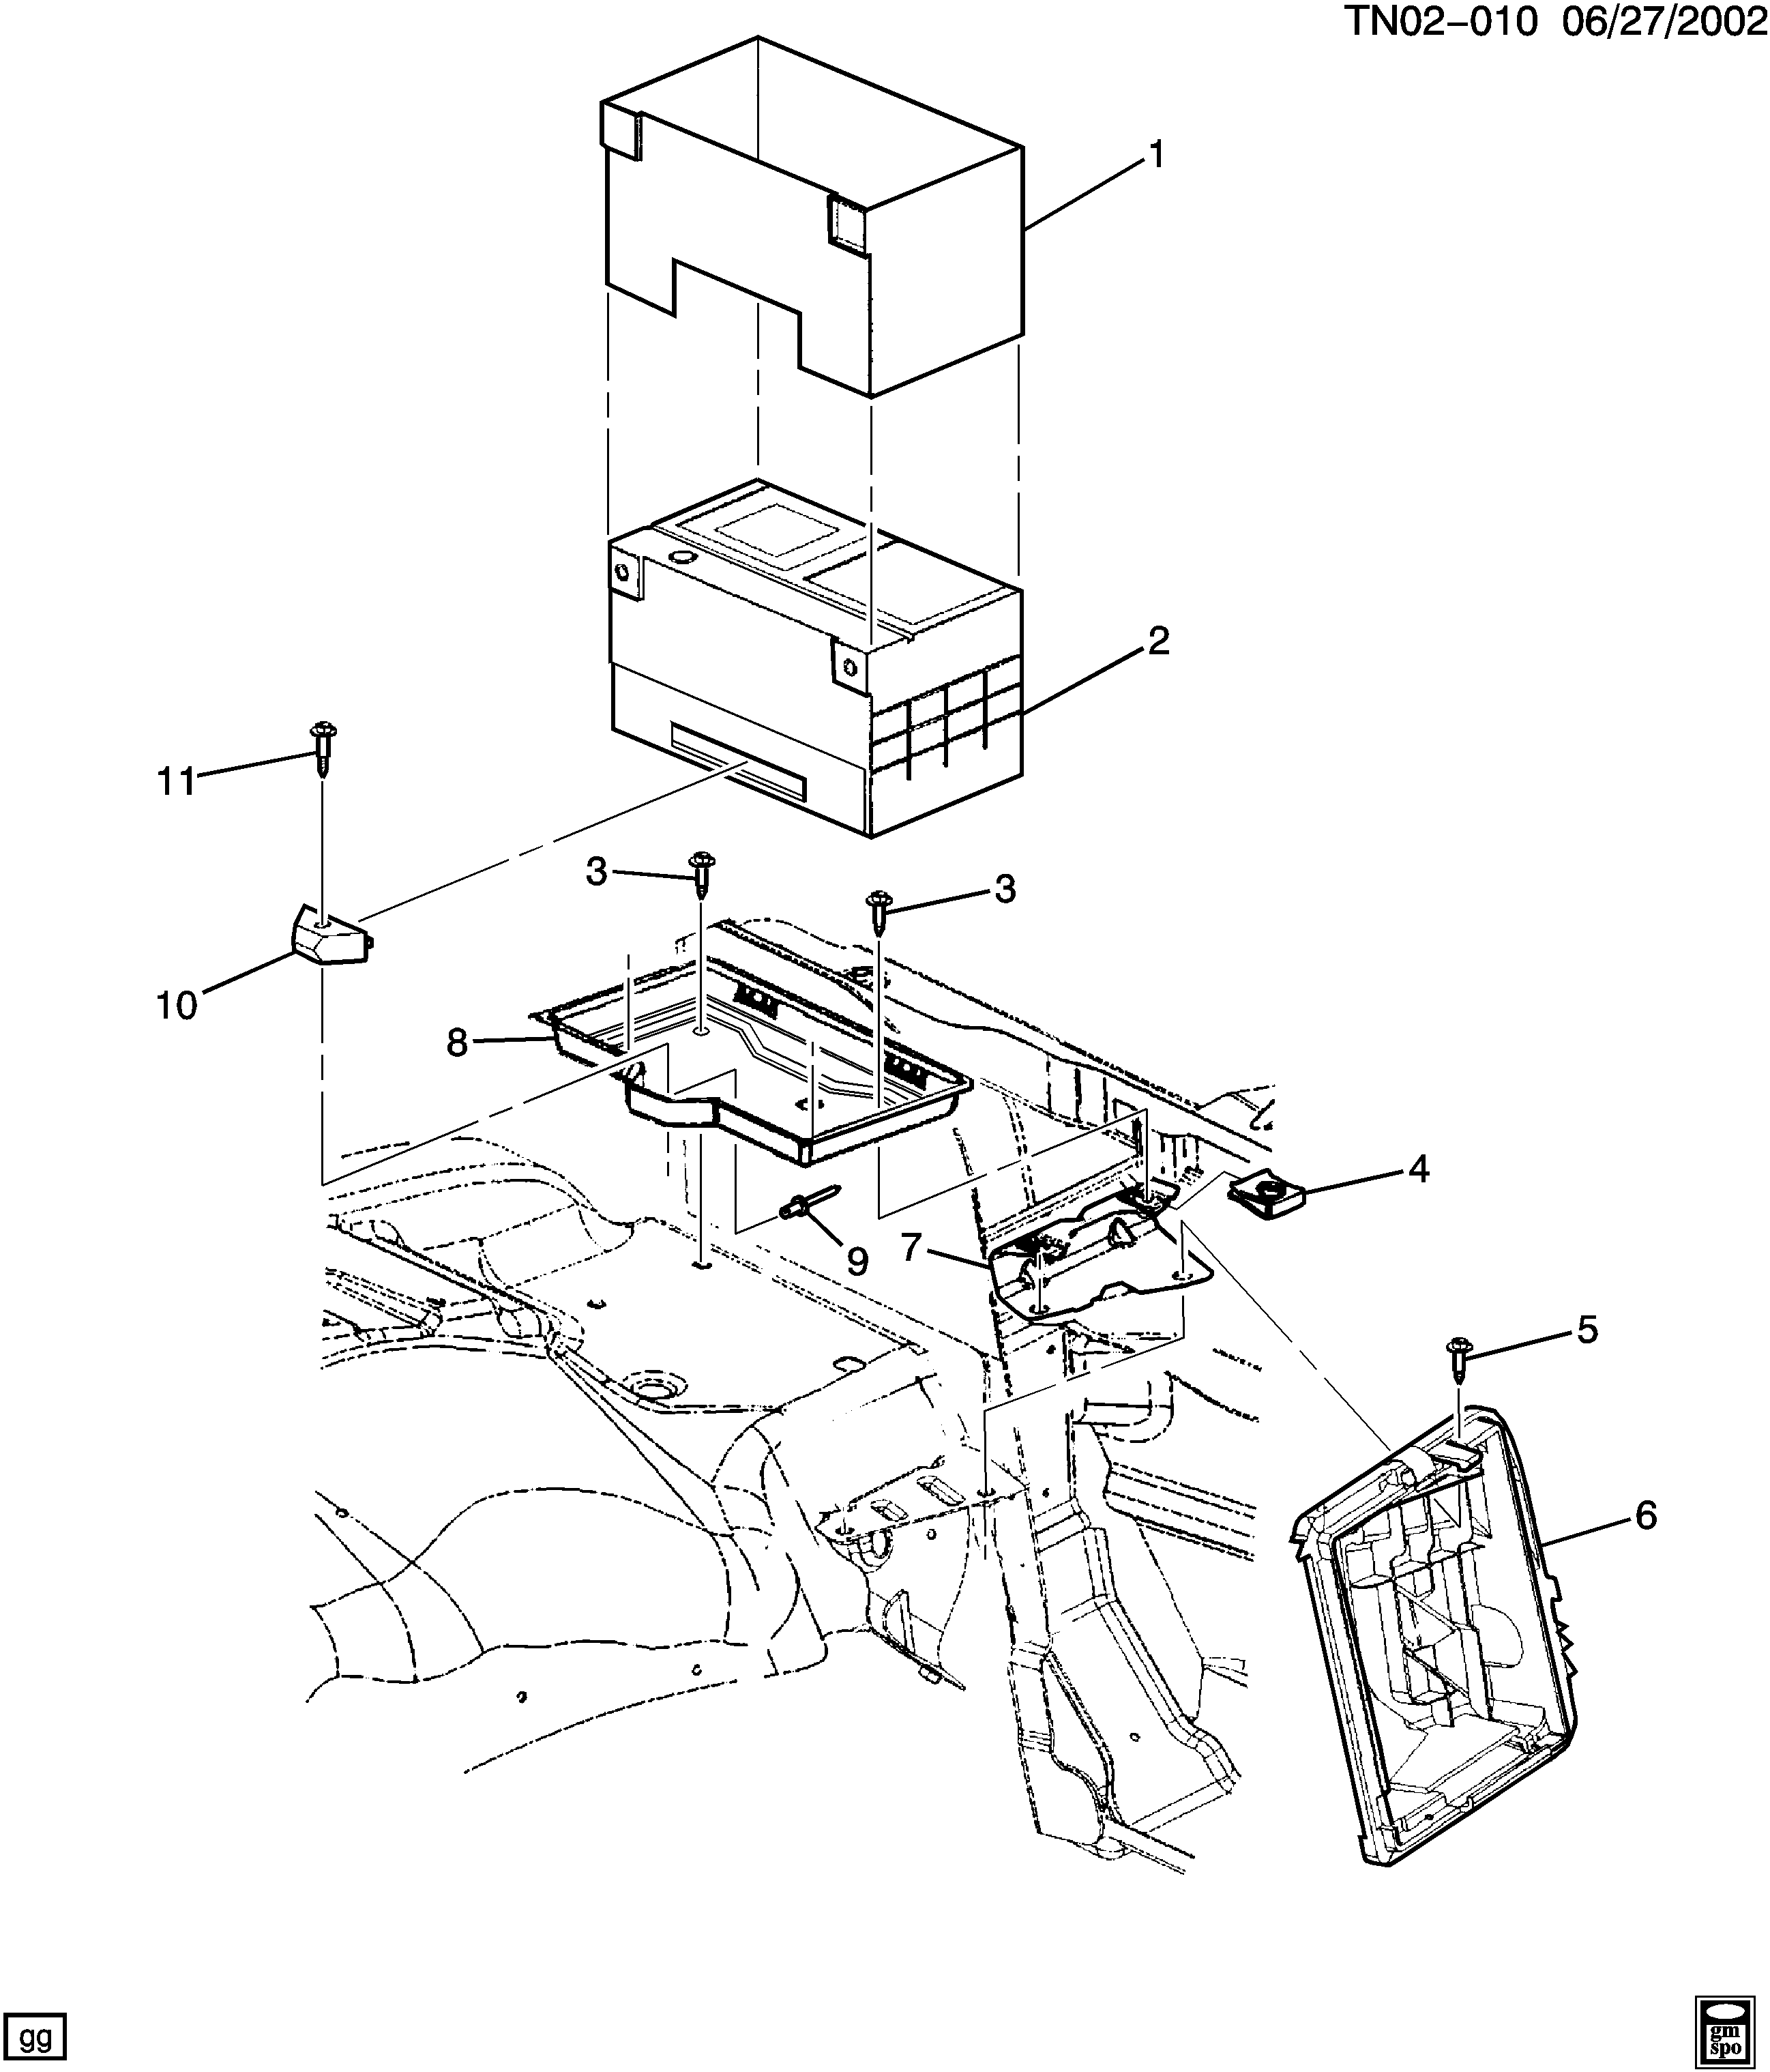 2003-2007 N2 BATTERY MOUNTING